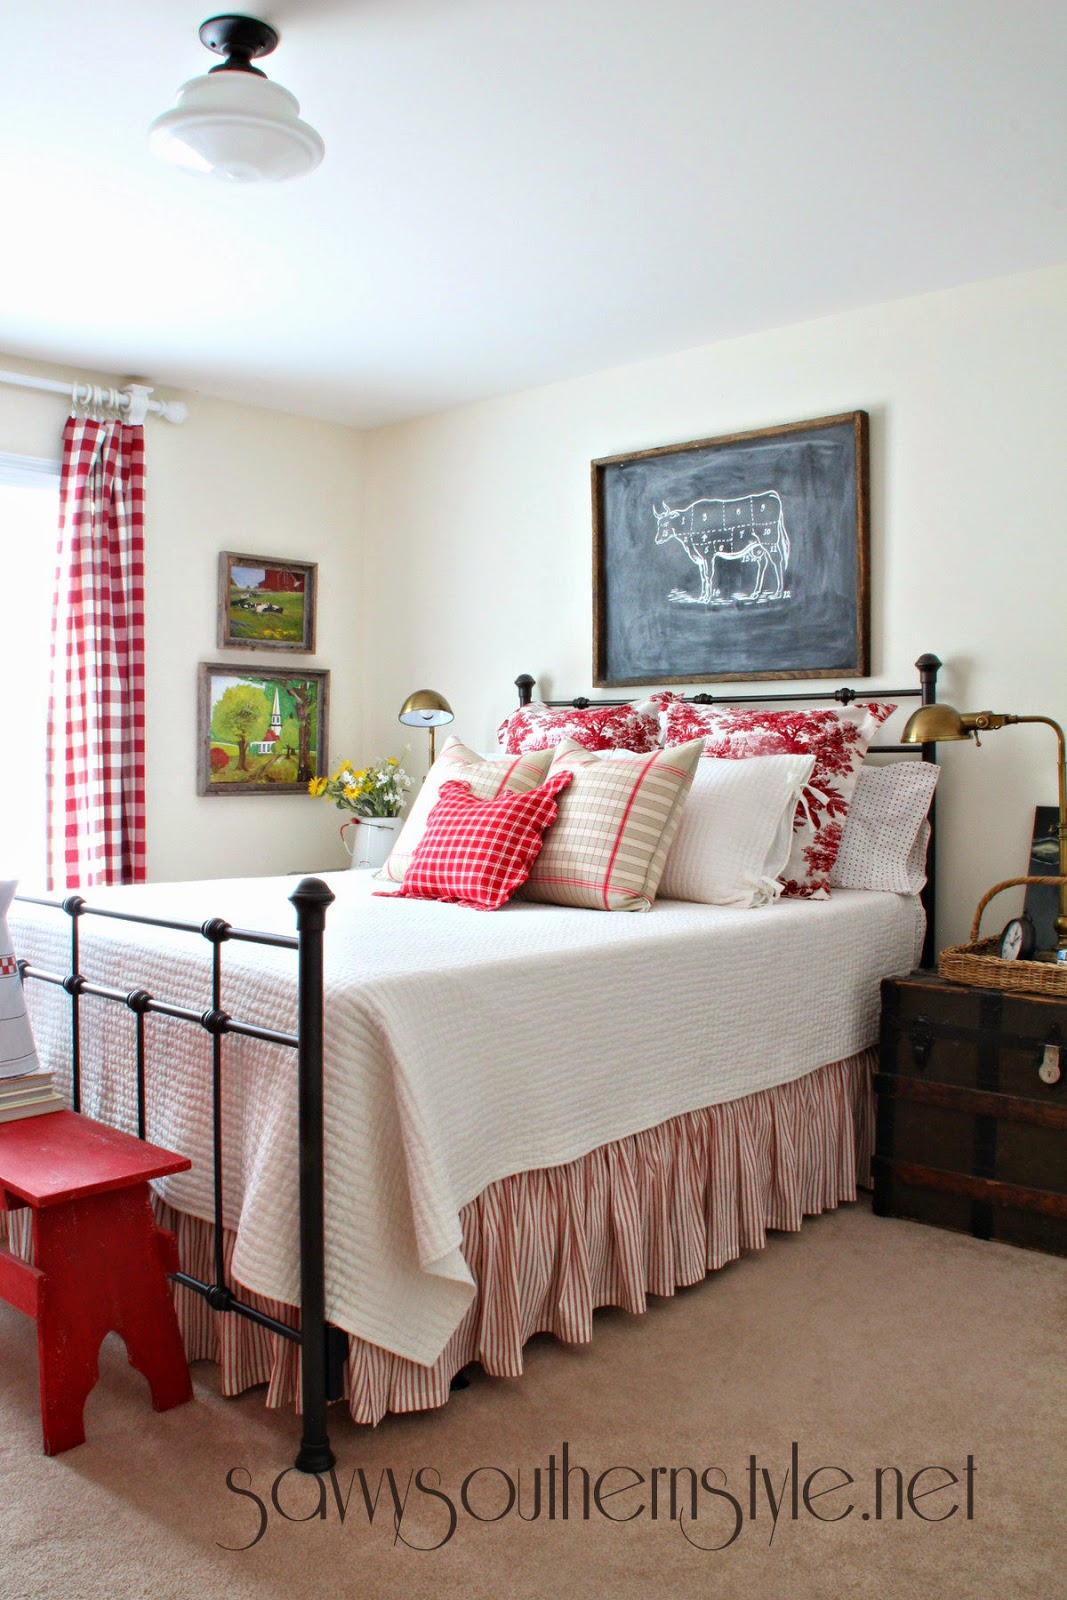 Fashion Inspired Guest Room: Savvy Southern Style : Mid Summer Farmhouse Style Guestroom